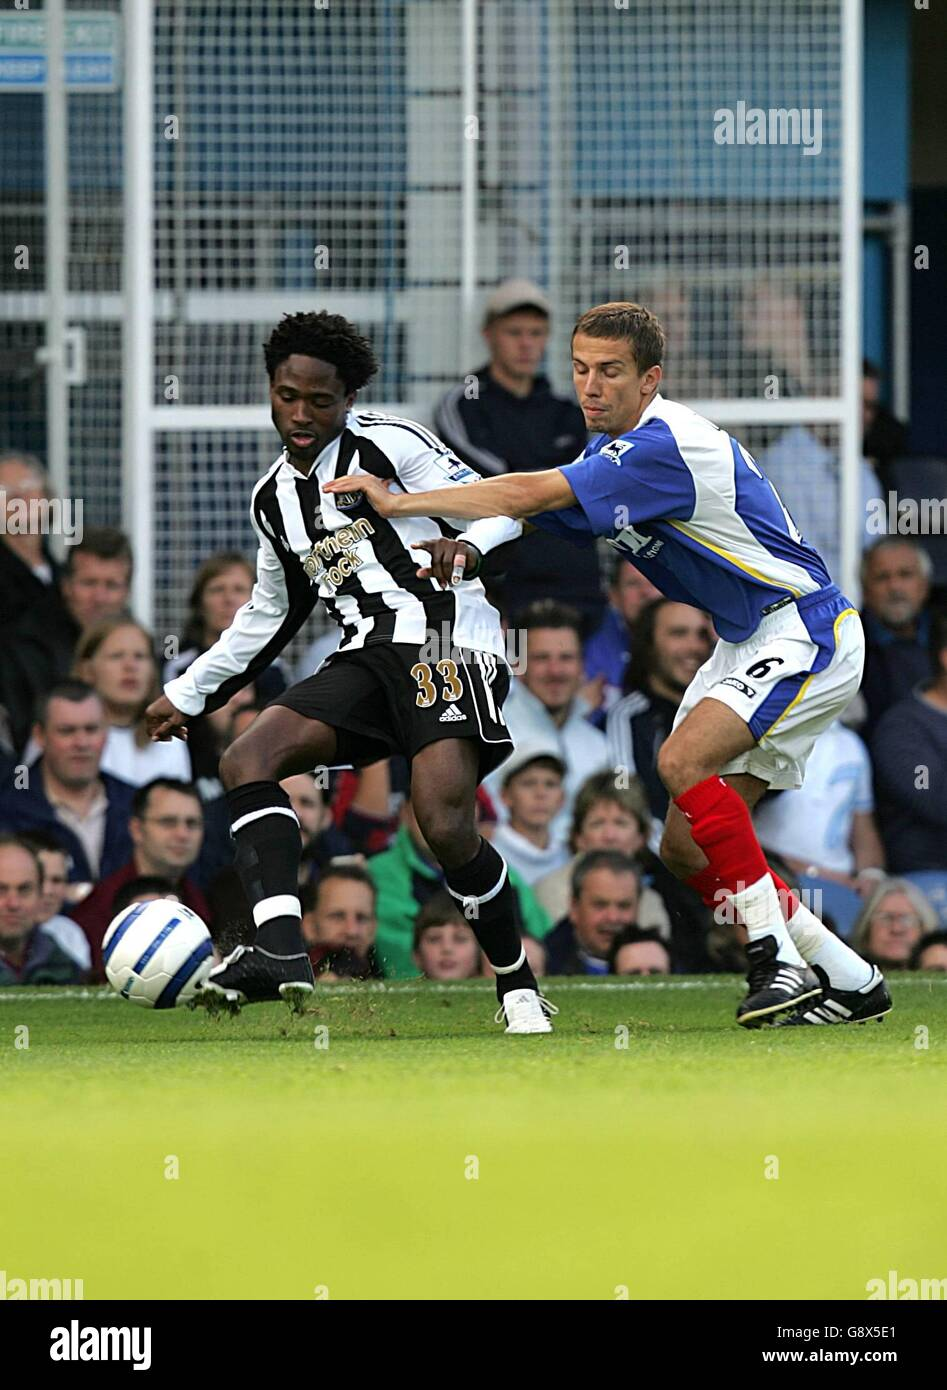 Soccer - FA Barclays Premiership - Portsmouth v Newcastle United - Fratton Park - Stock Image